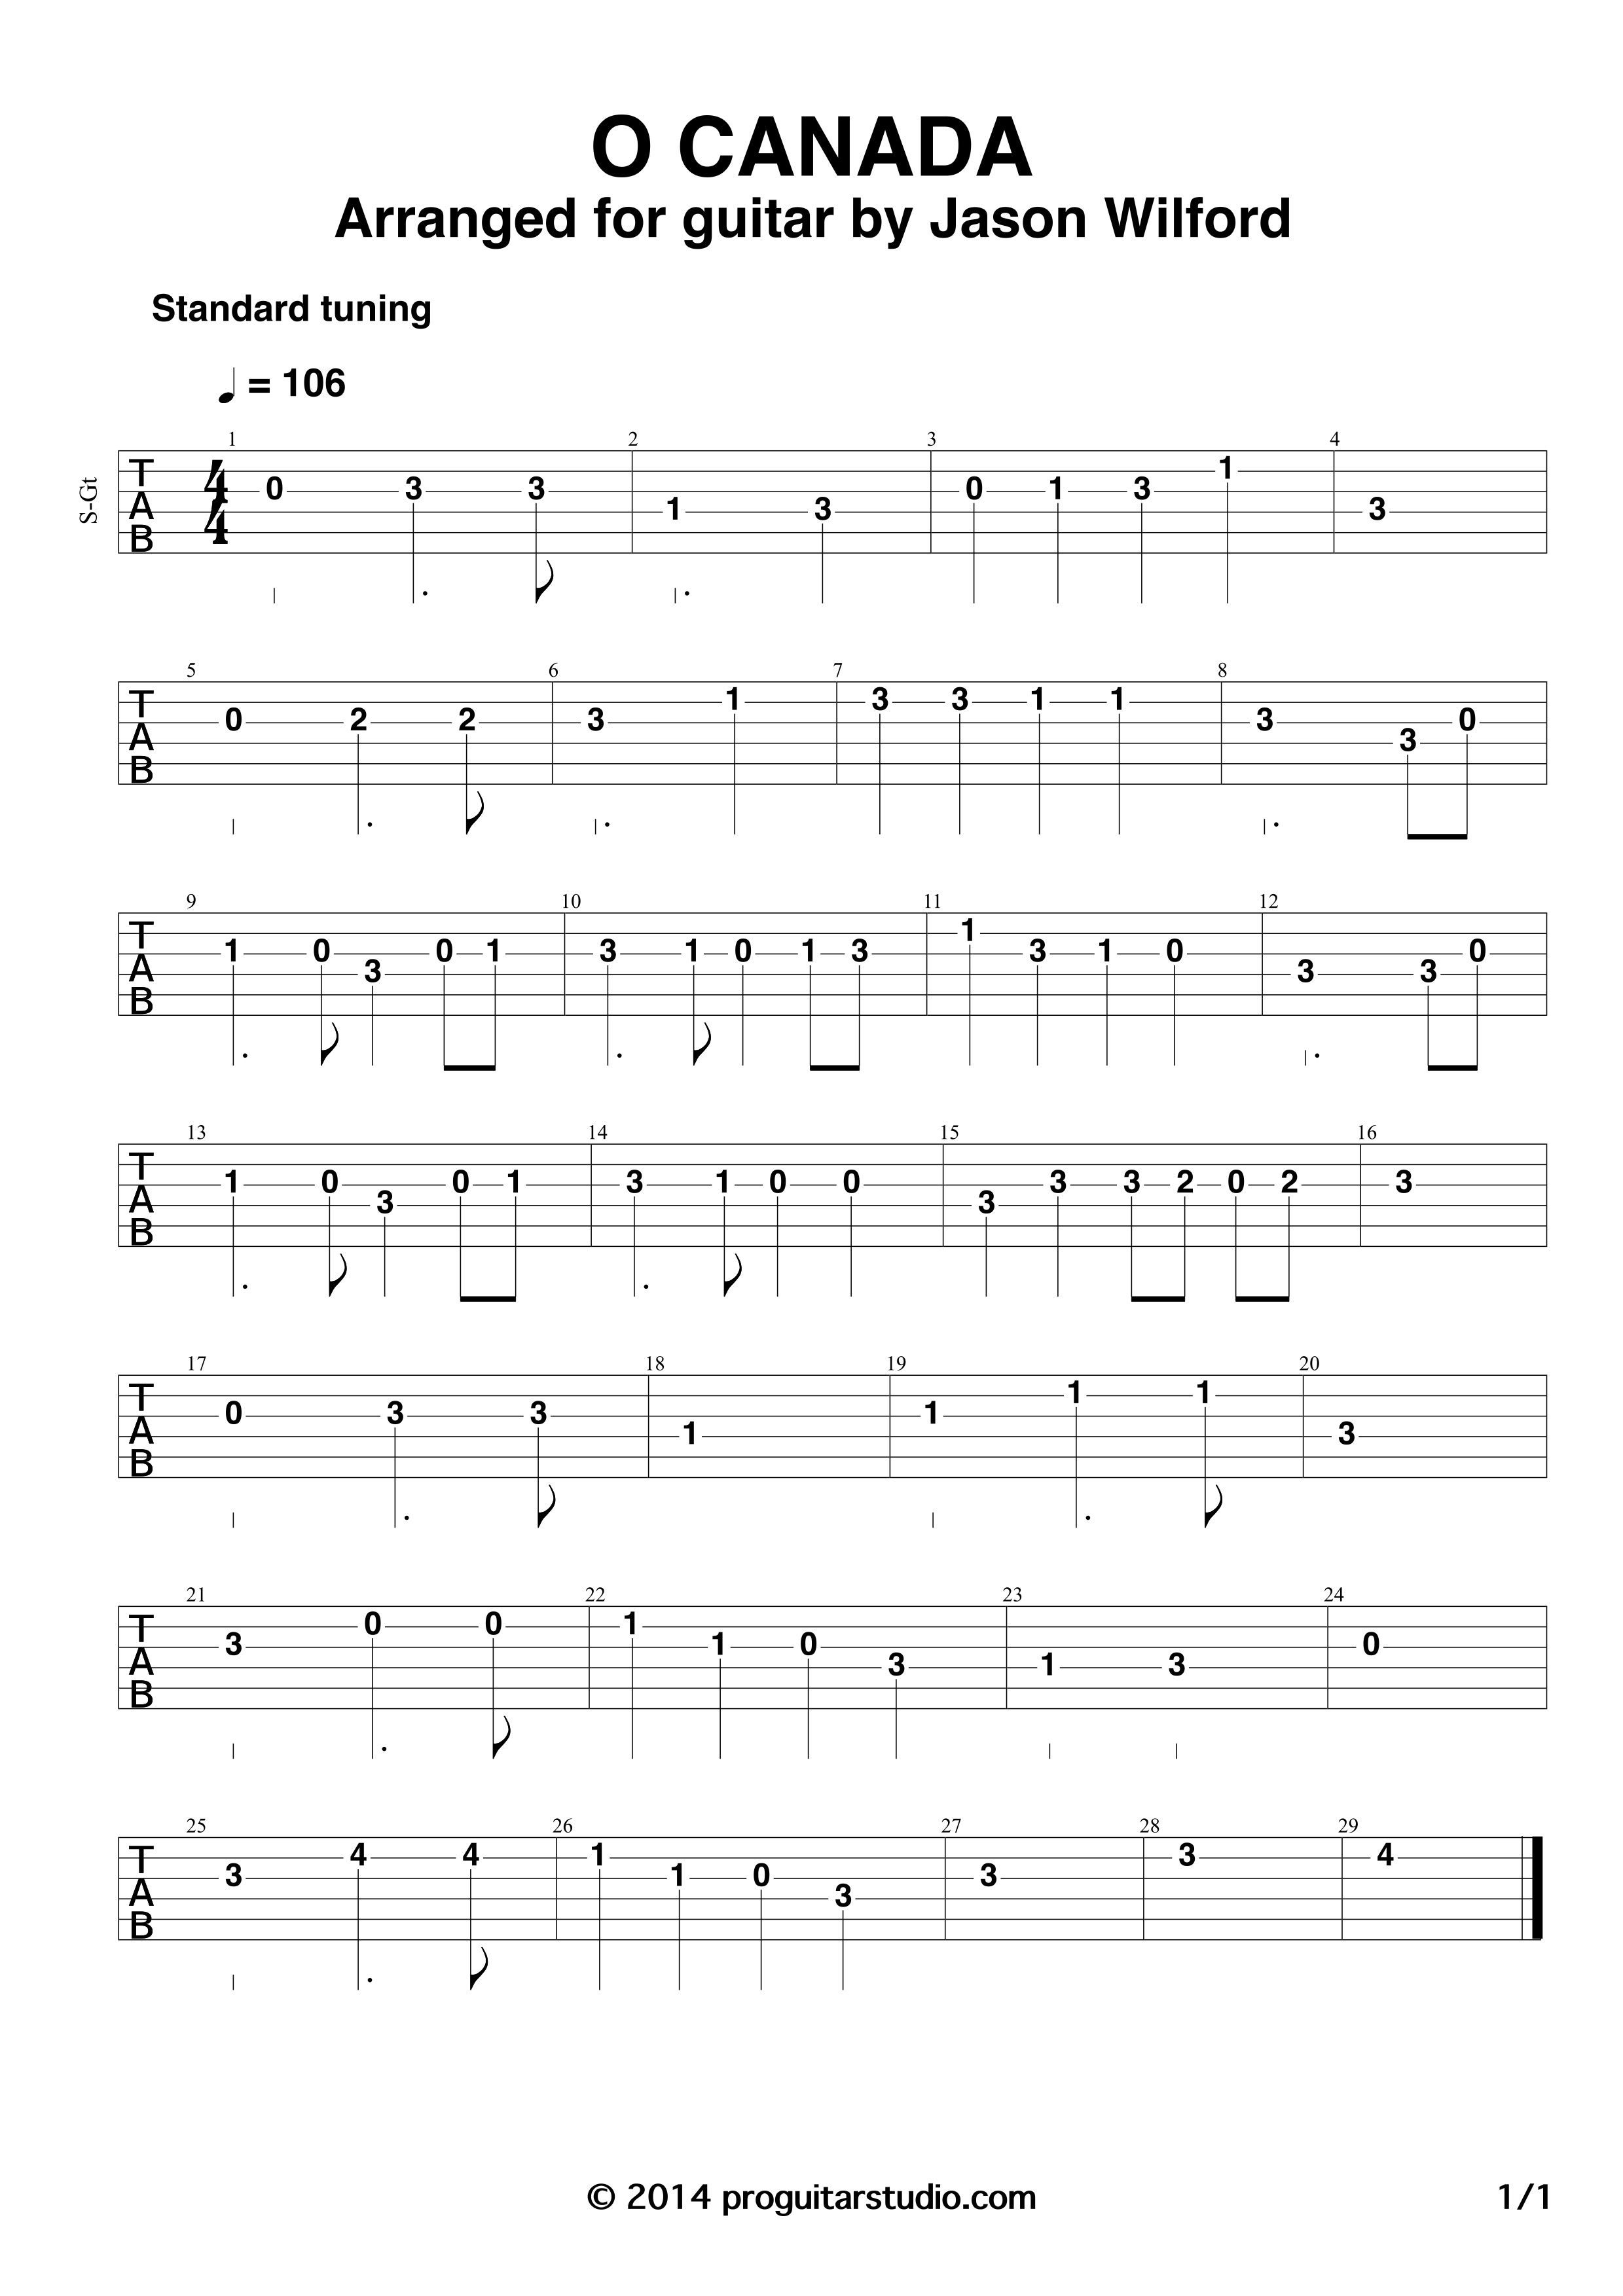 O Canada Tablature Google Search With Images Tablature